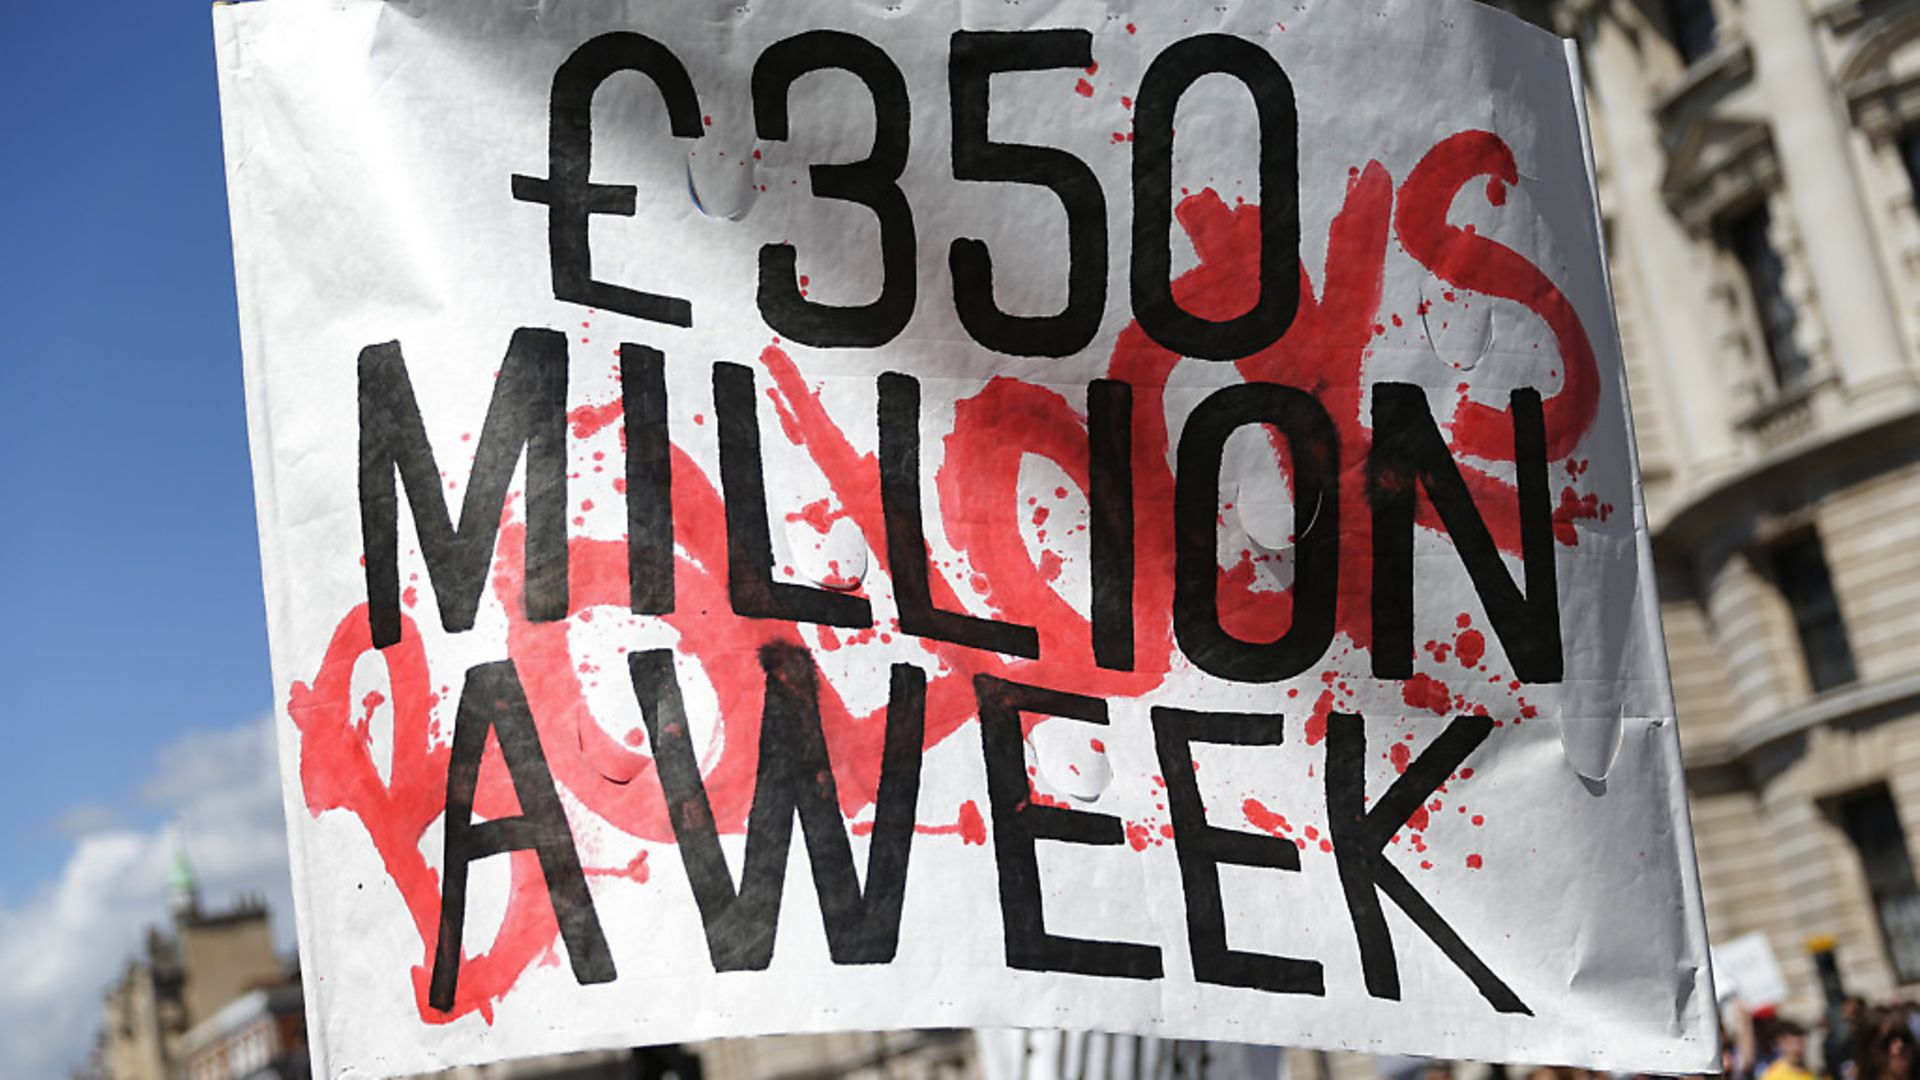 A sign is held in at an anti-Brexit protest branding the £350m a week Vote Leave claim 'bollocks'. (Daniel Leal-Olivas/PA). - Credit: PA Archive/PA Images